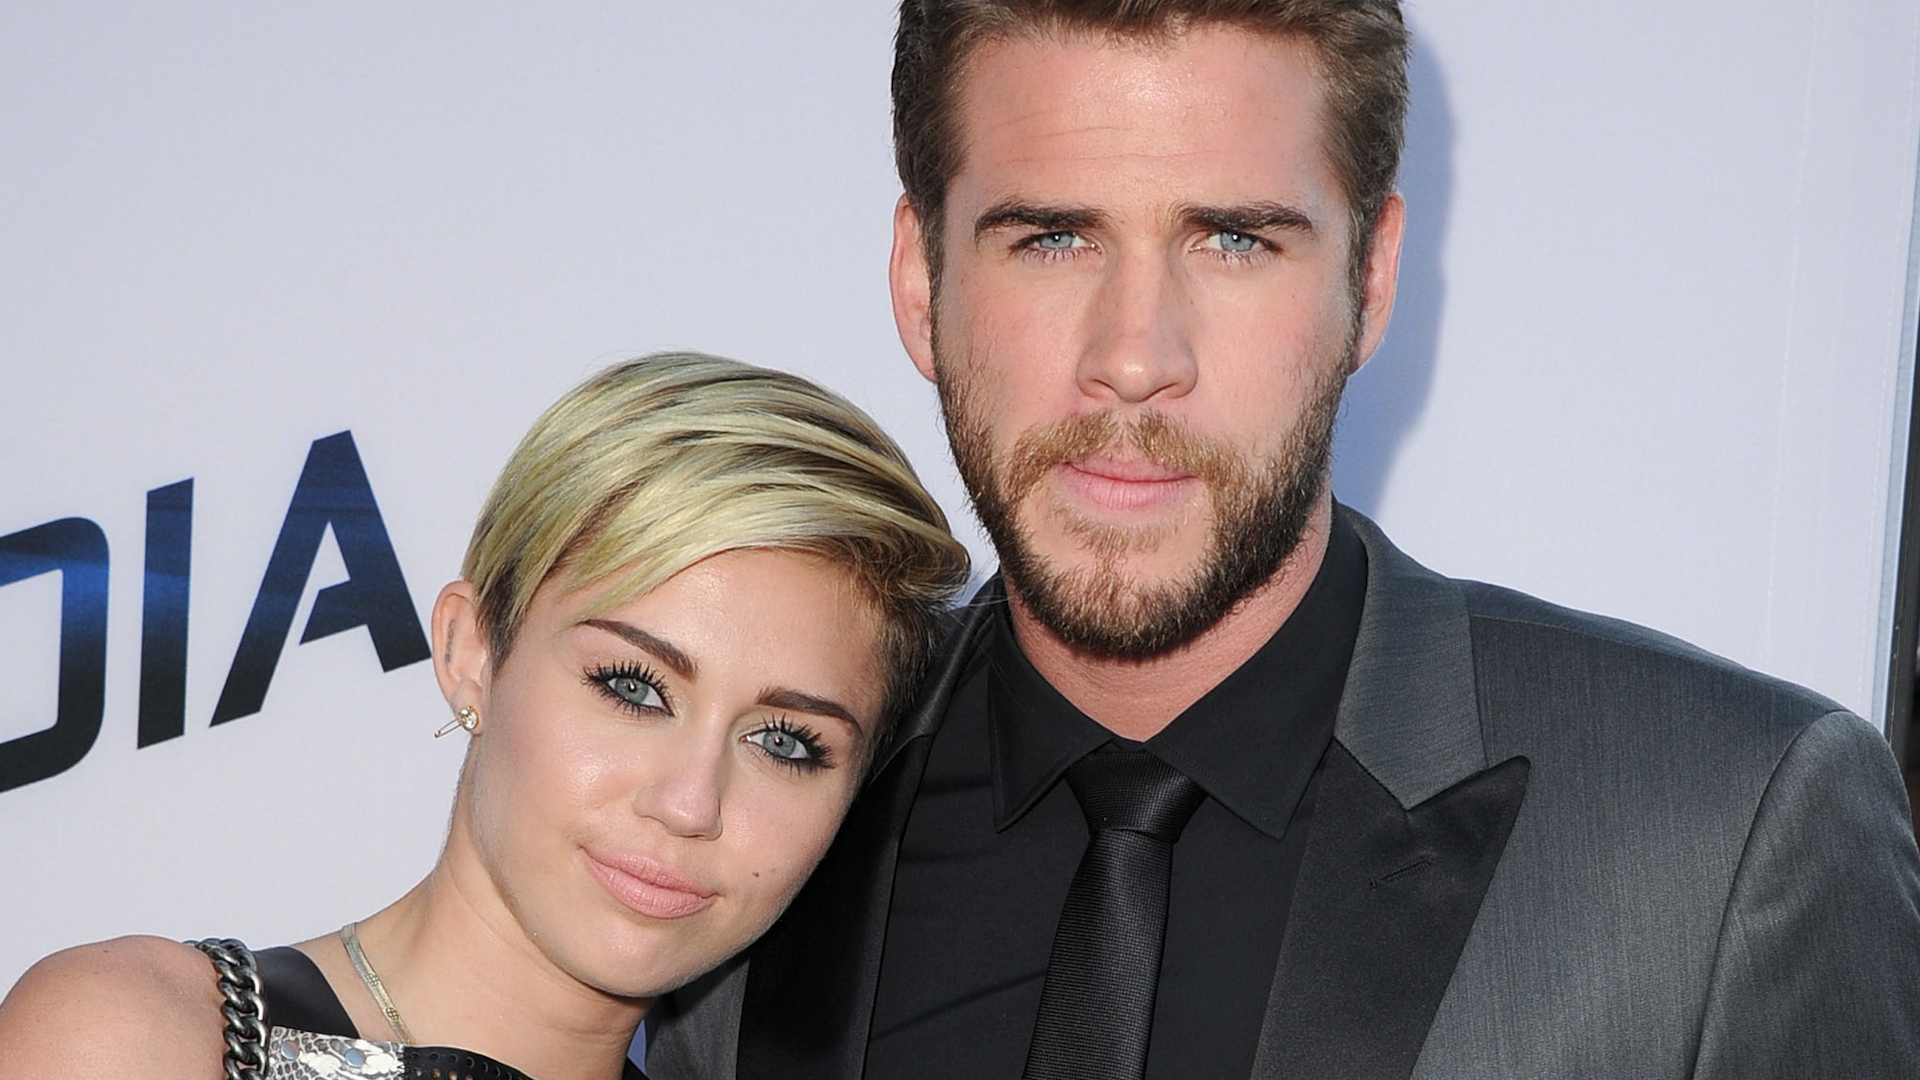 How Miley Cyrus Has Given Up Partying After Reuniting with Love Liam Hemsworth